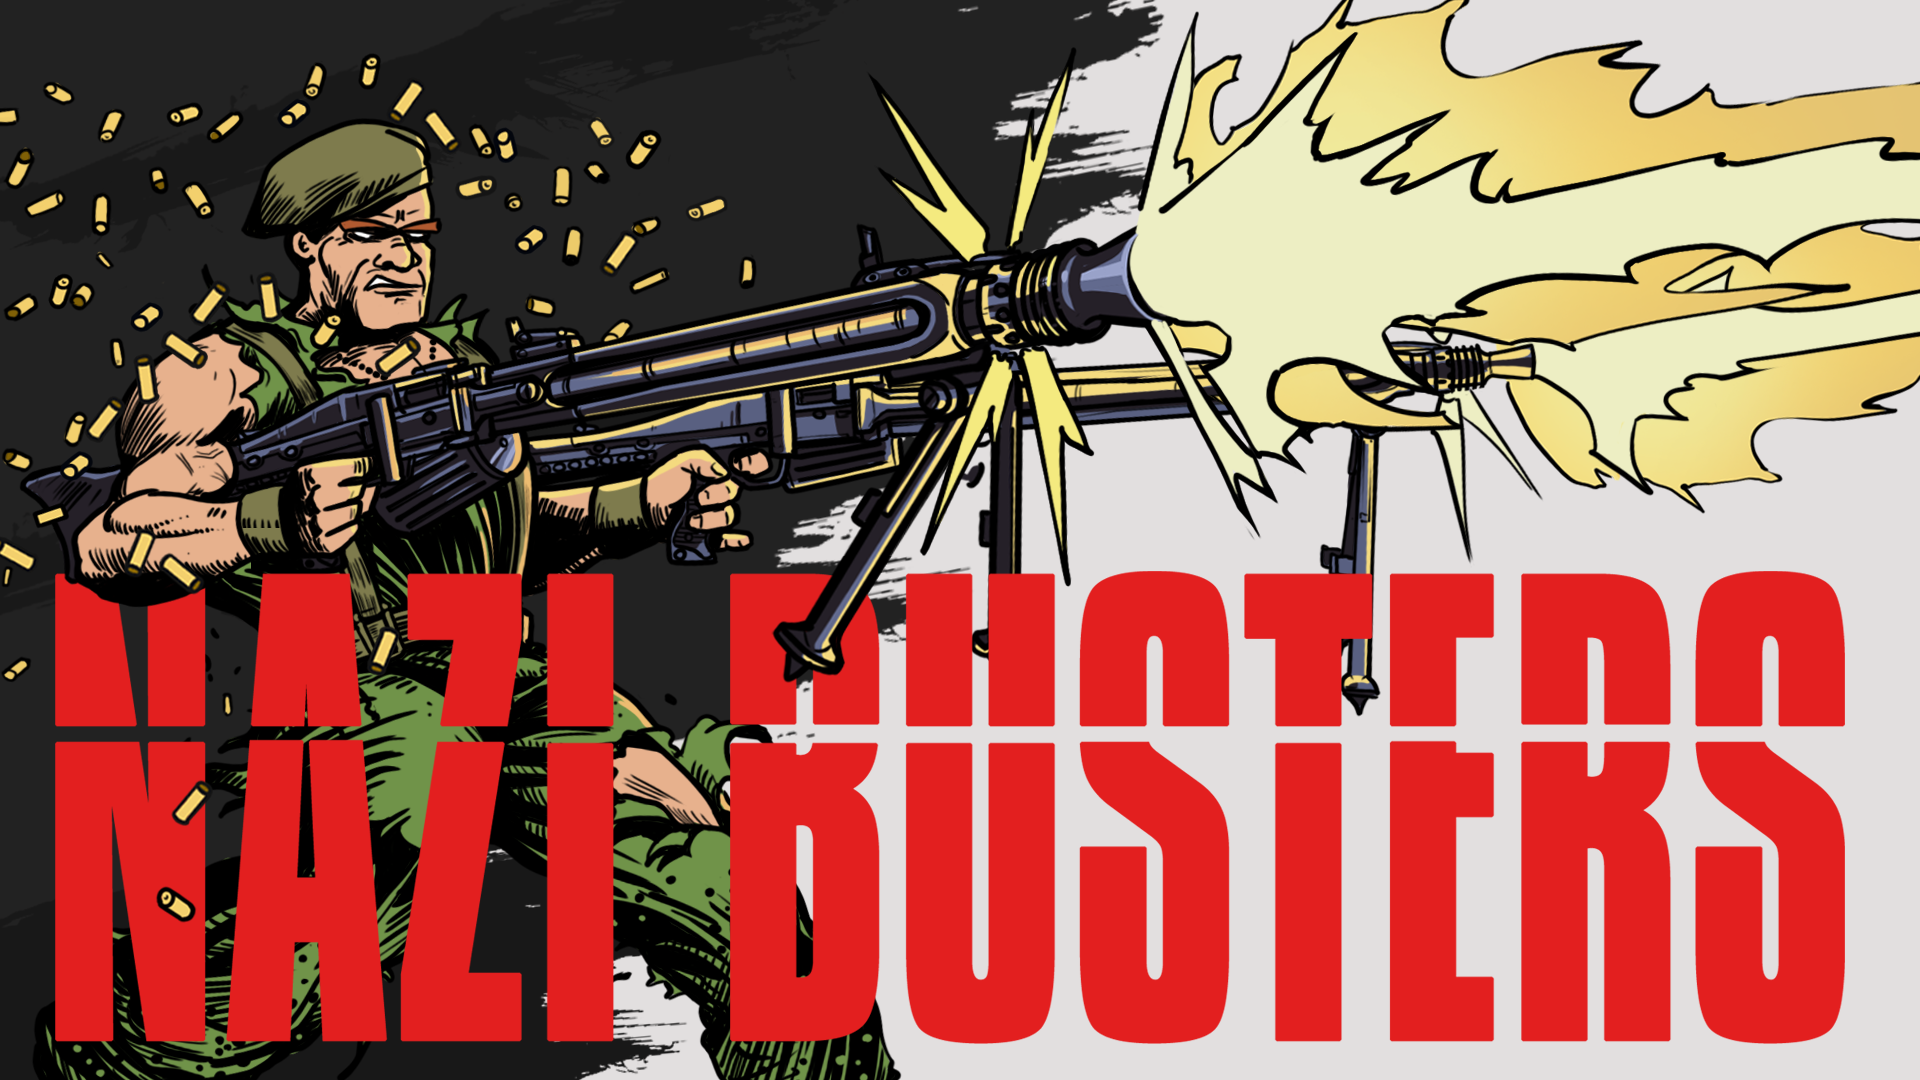 Nazi Busters cover Iron Wolf Studio